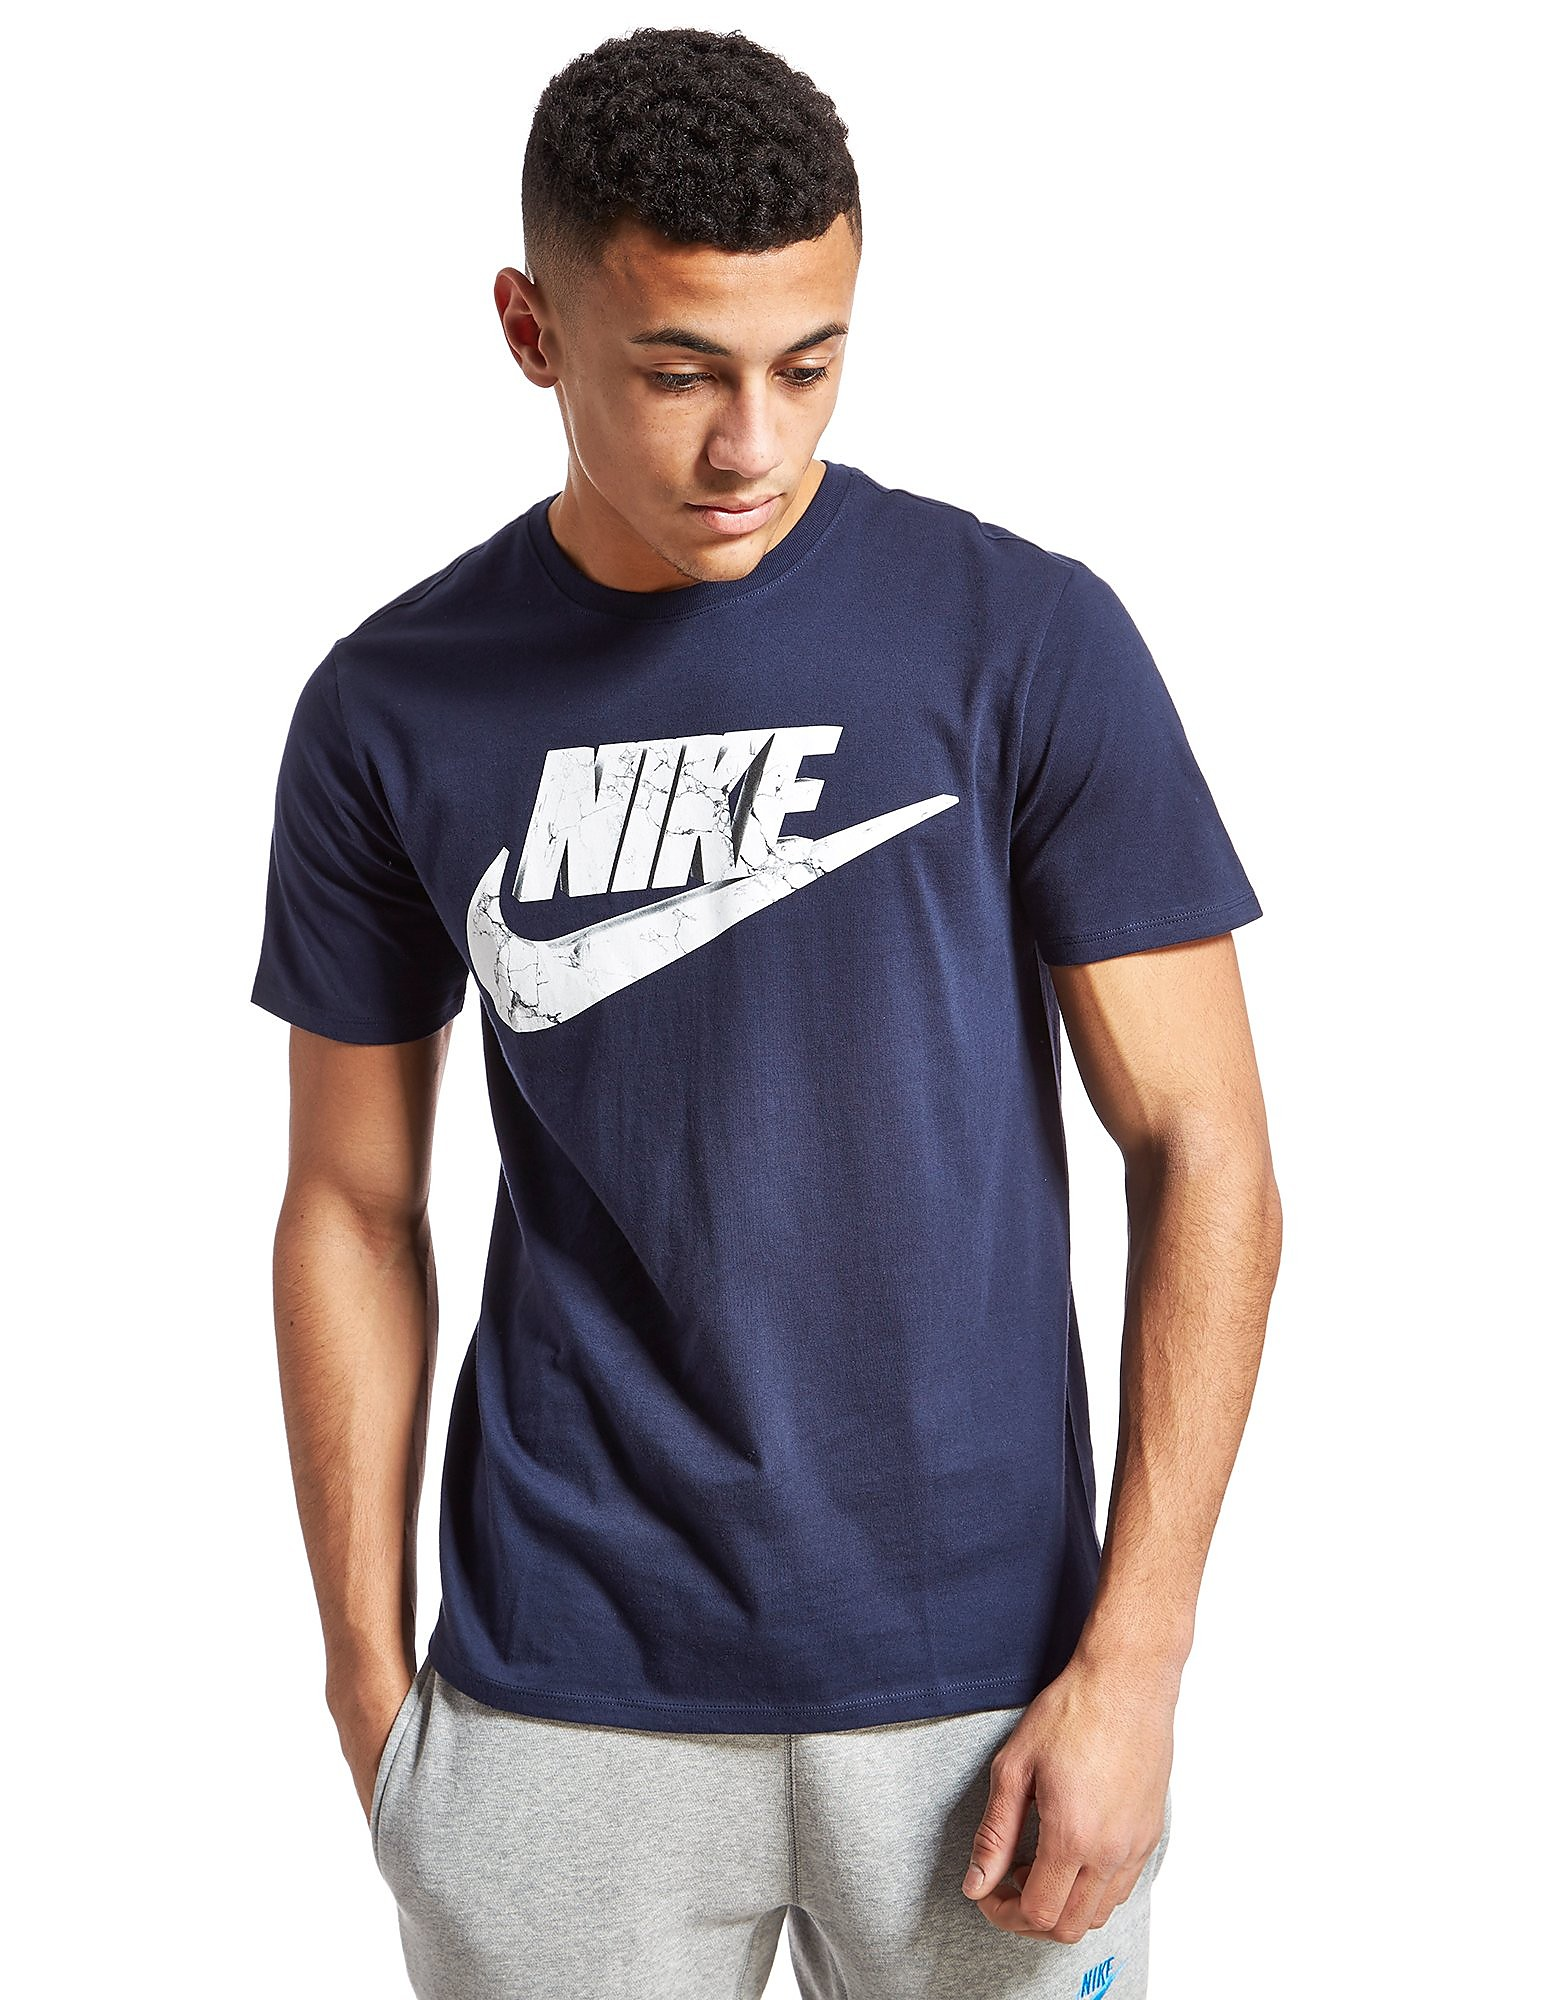 Nike Marble T-Shirt